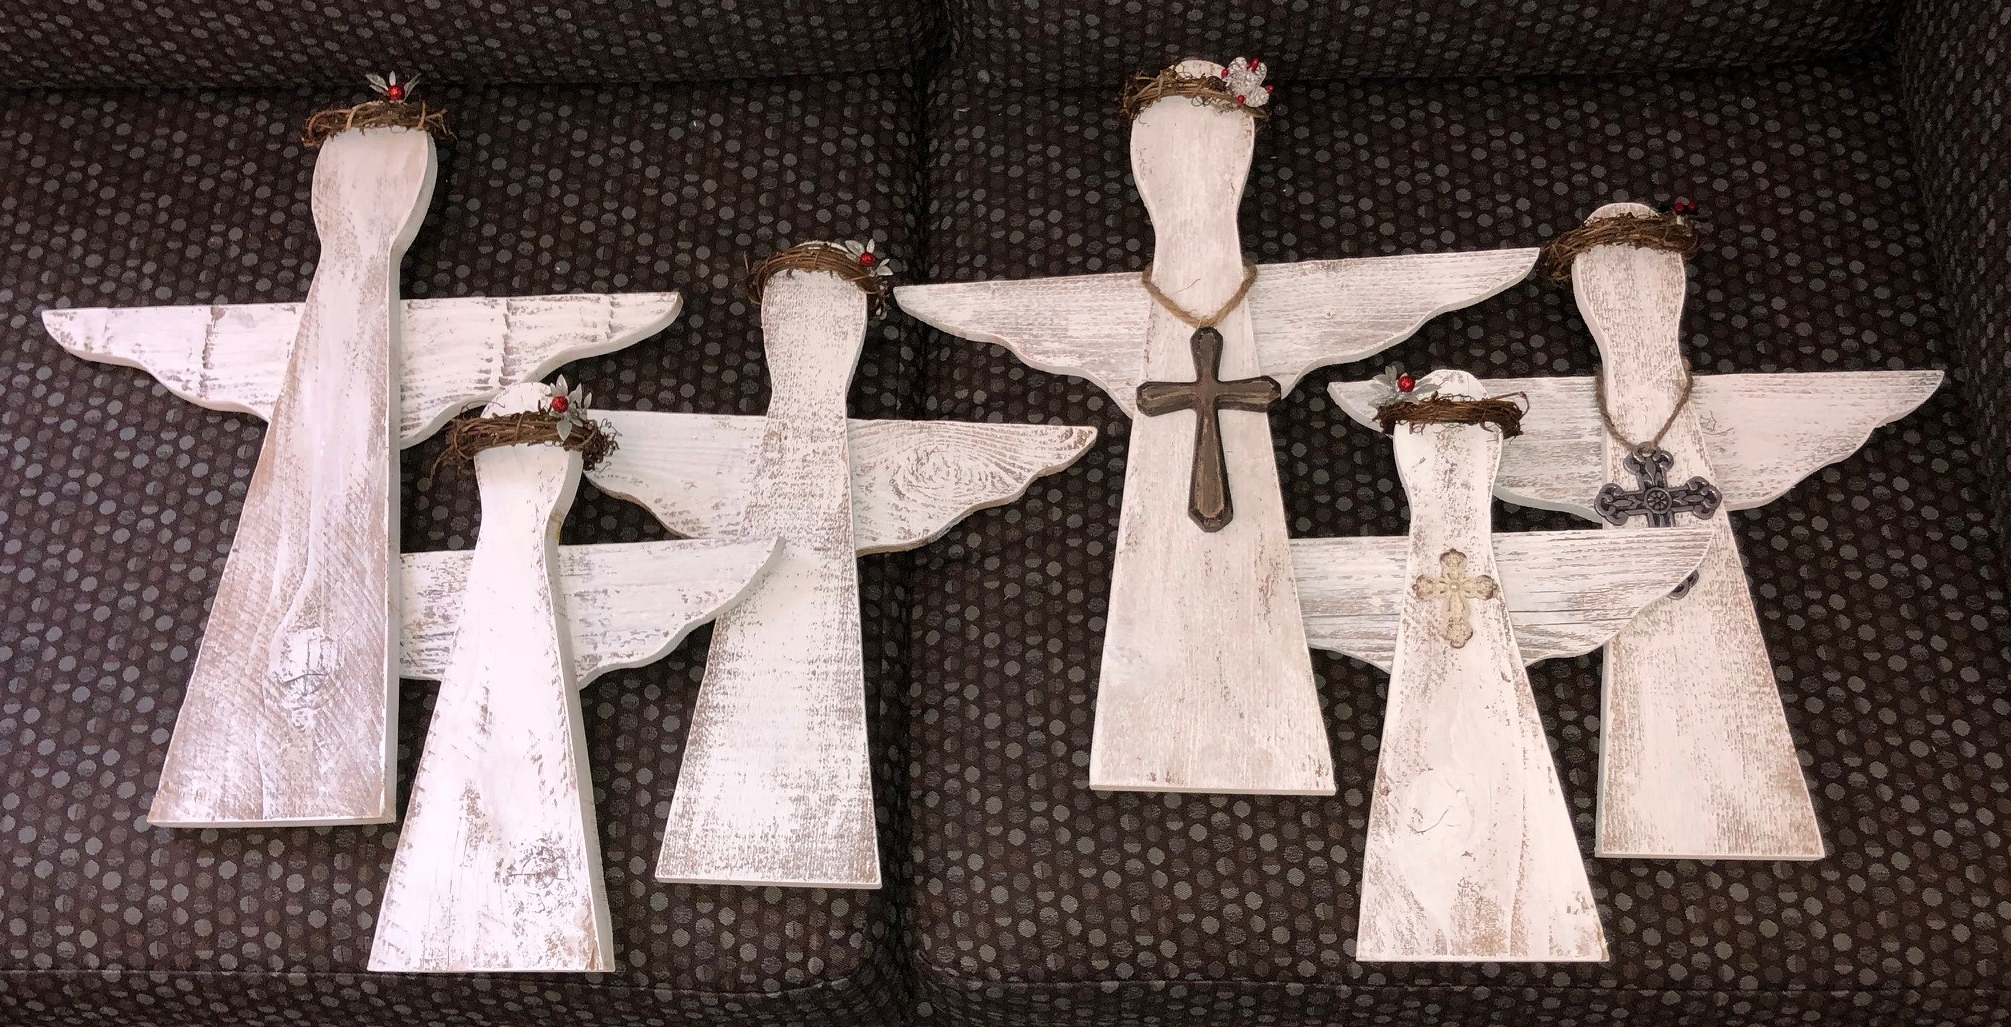 Angels, lovingly hand-crafted by St. Paul's Youth from reclaimed wood.